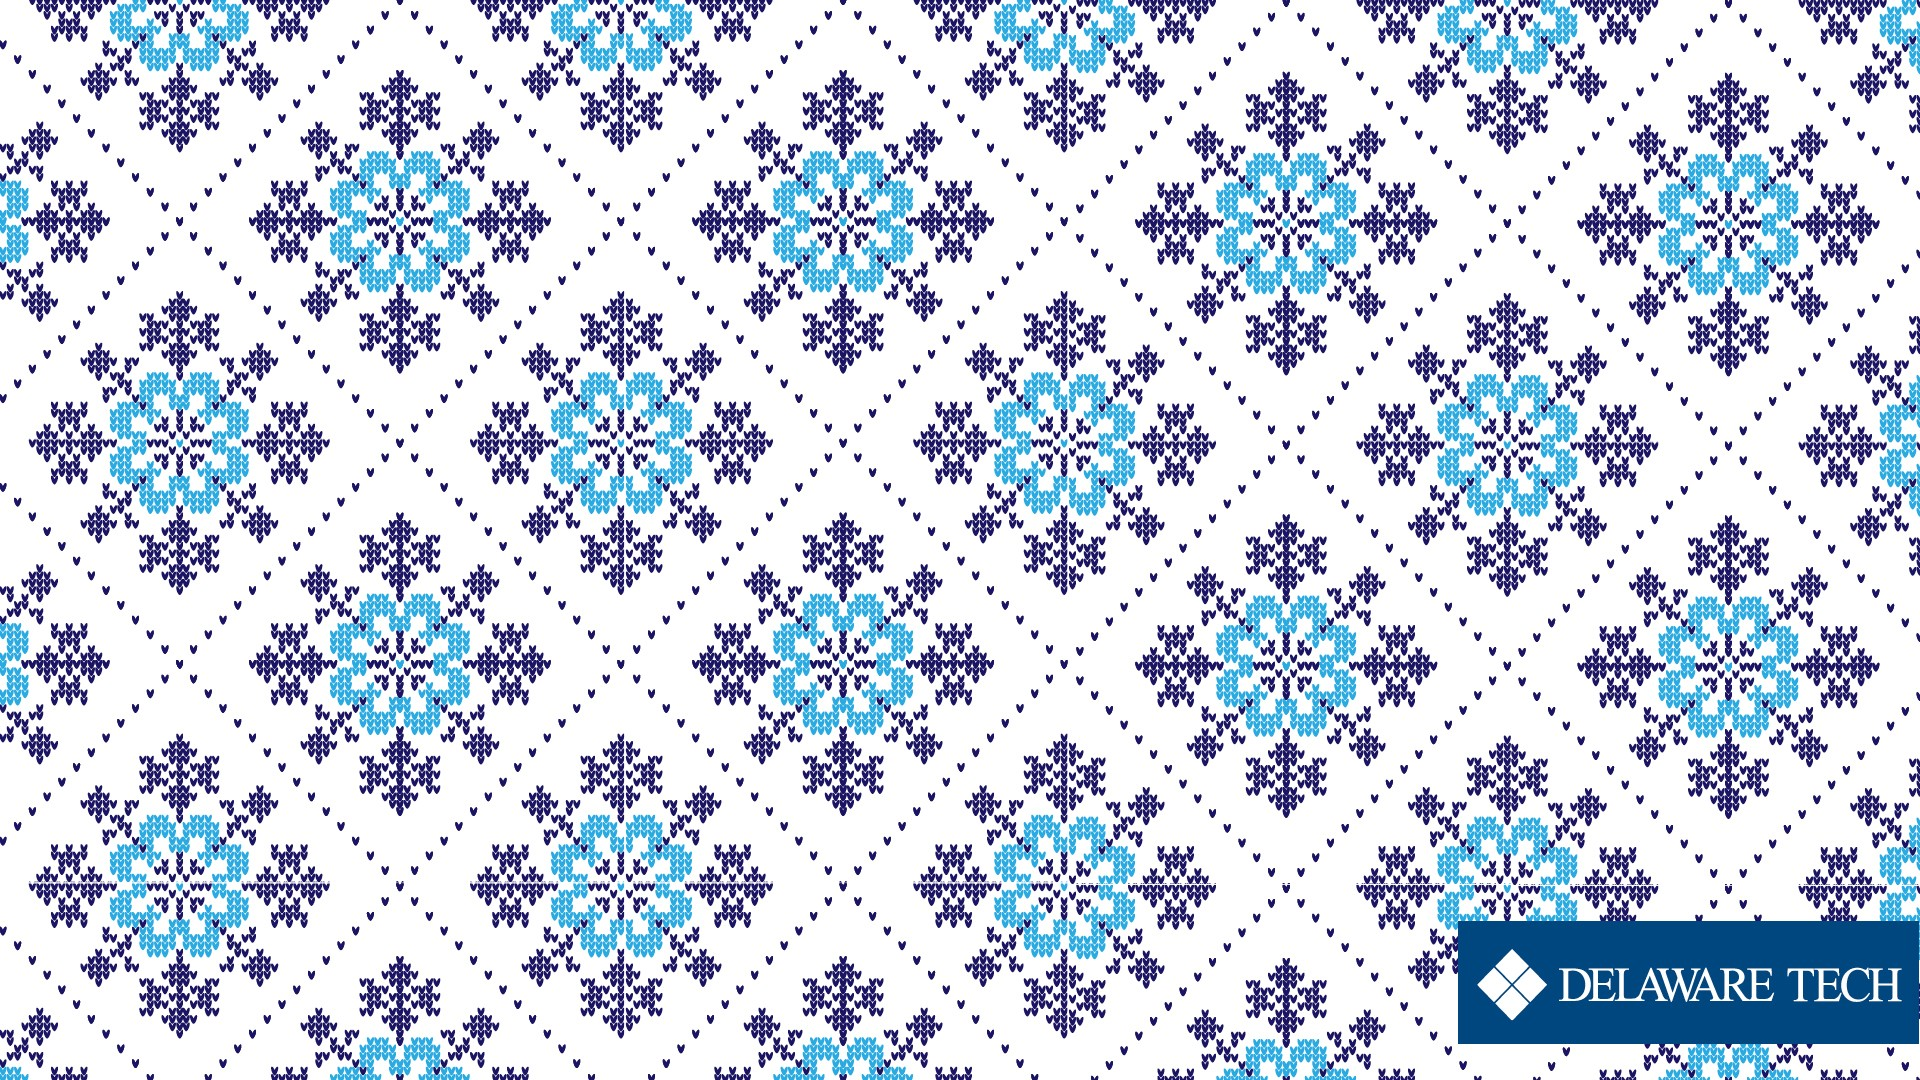 A blue and white snowflake patterned sweater texture images with the Delaware Tech logo at the bottom right